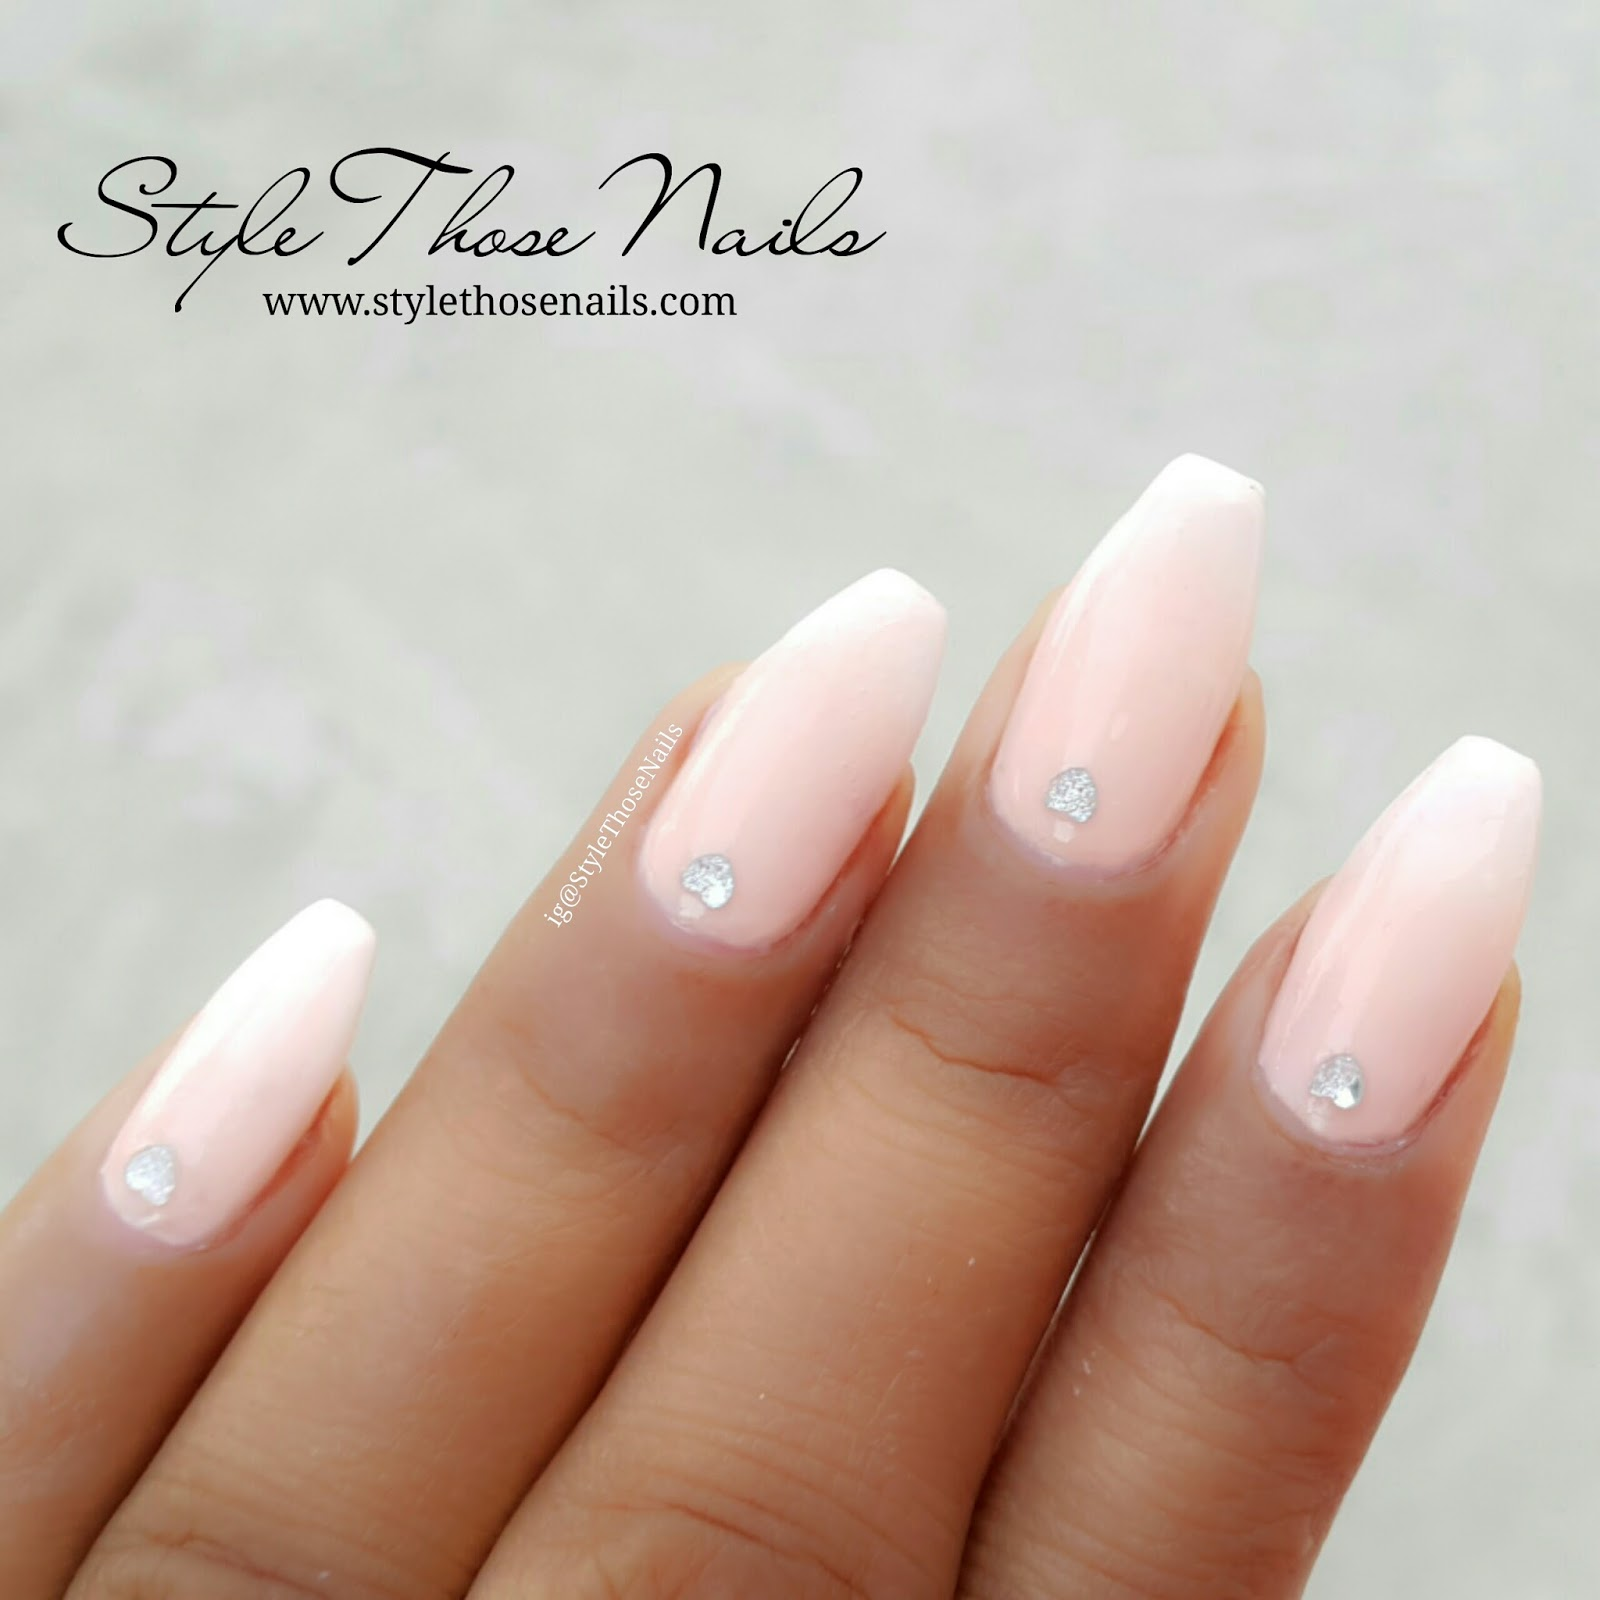 Style Those Nails: french manicure